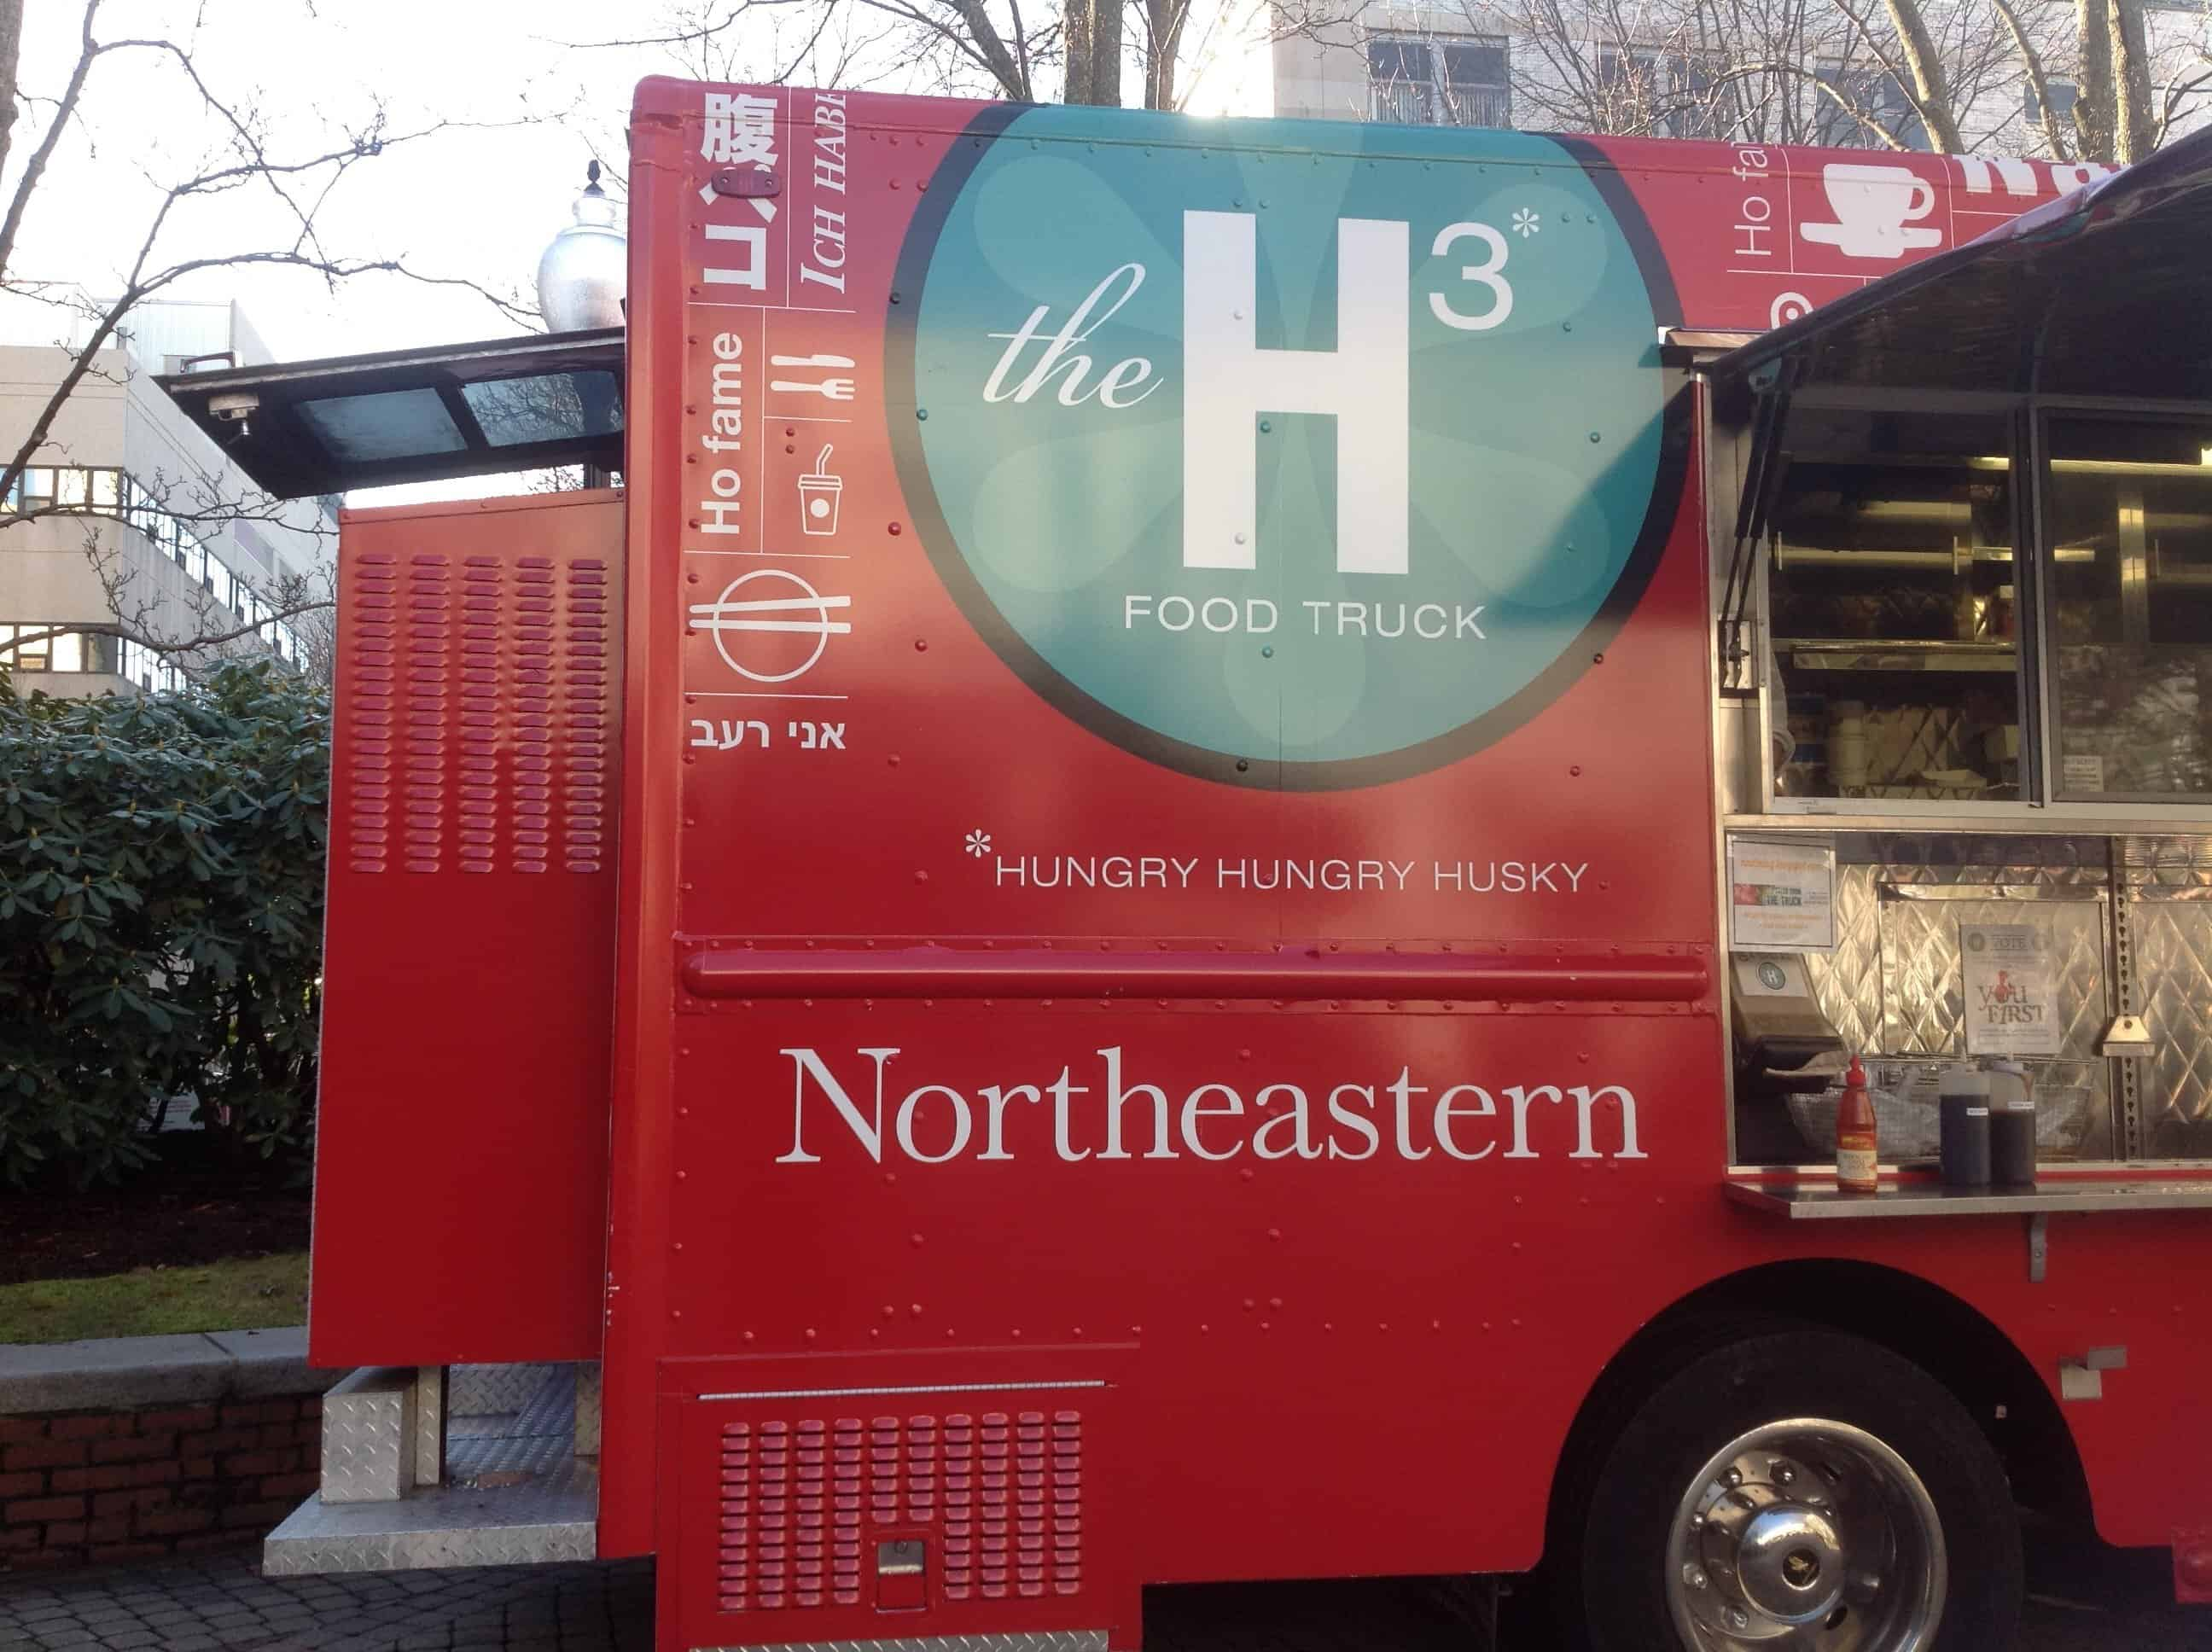 Northeastern Food Truck!